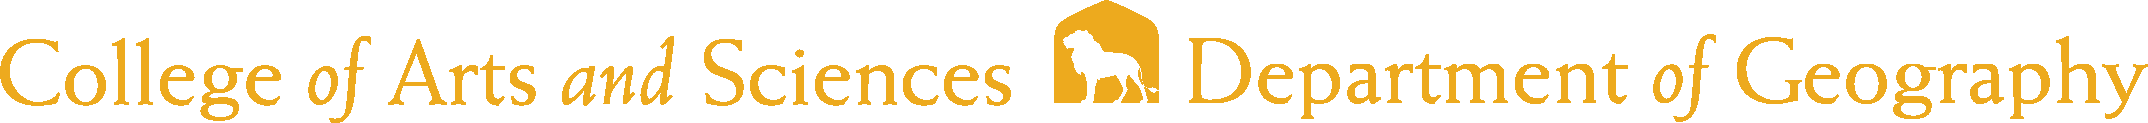 College of Arts and Sciences - Geography Logo - Gold - Version 2